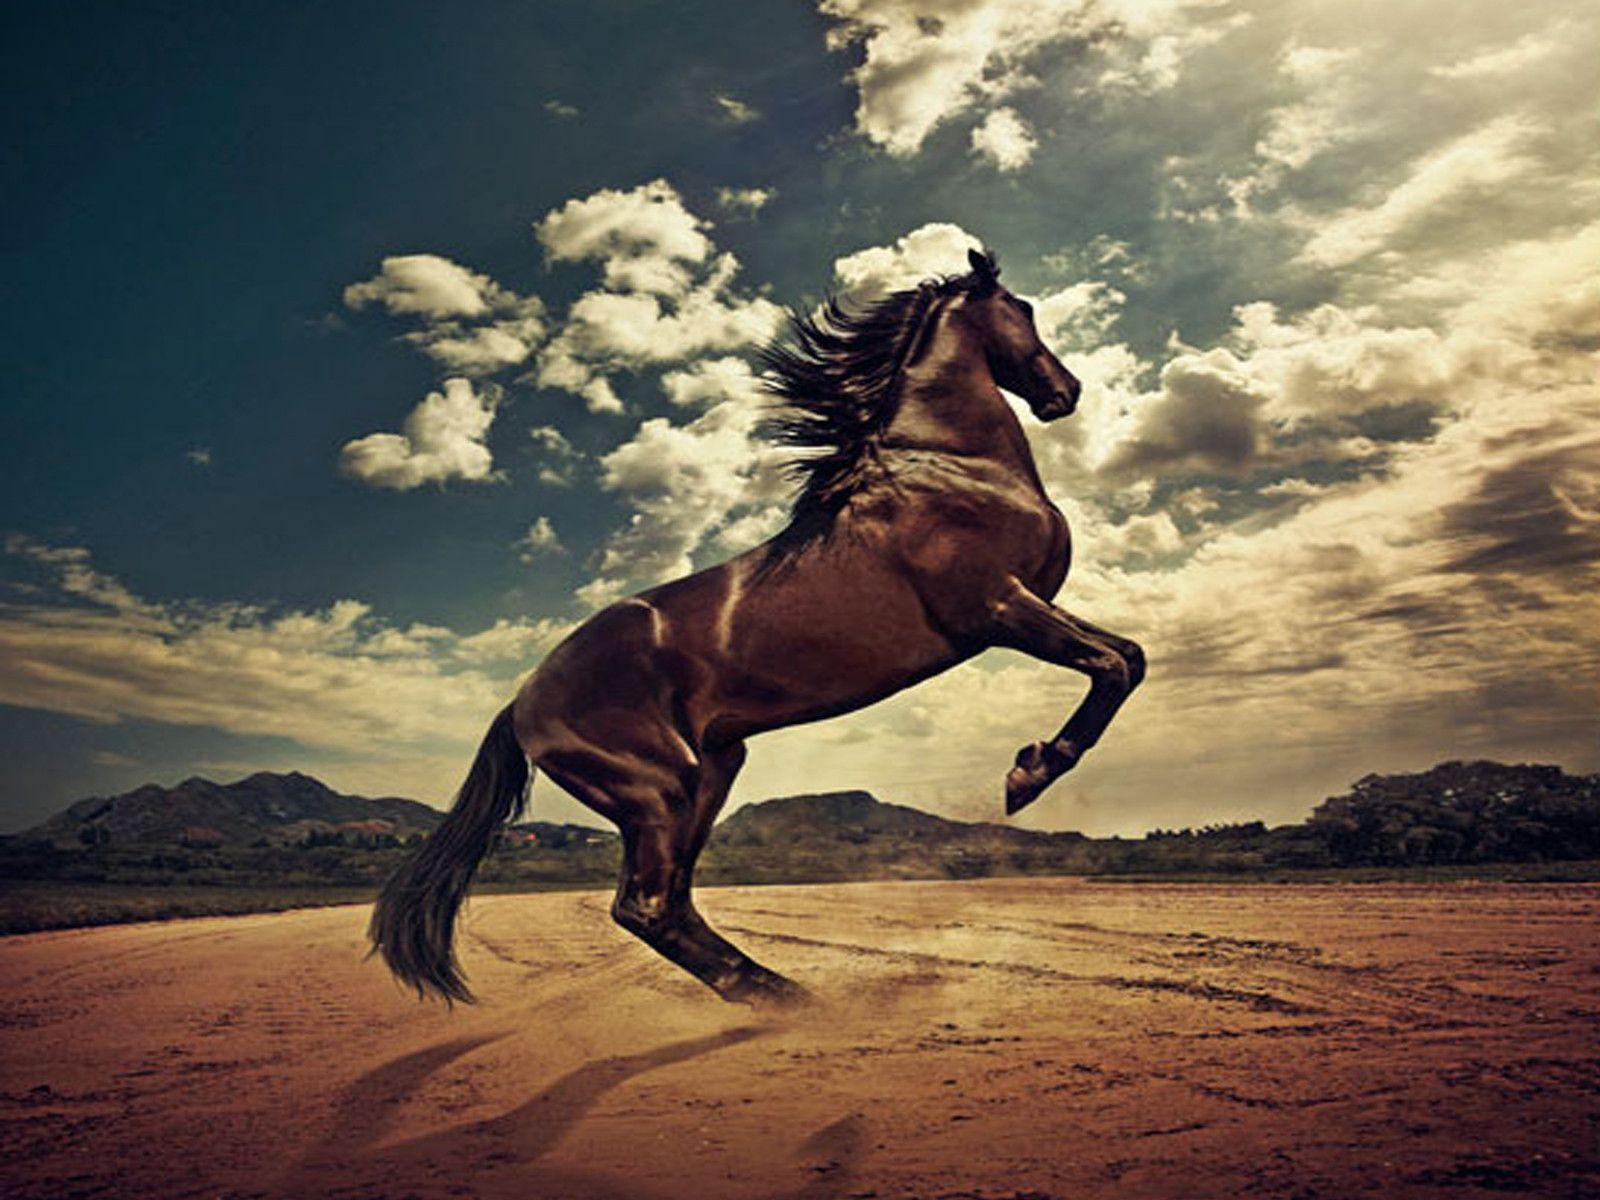 Cool Horse Wallpapers for iPhone